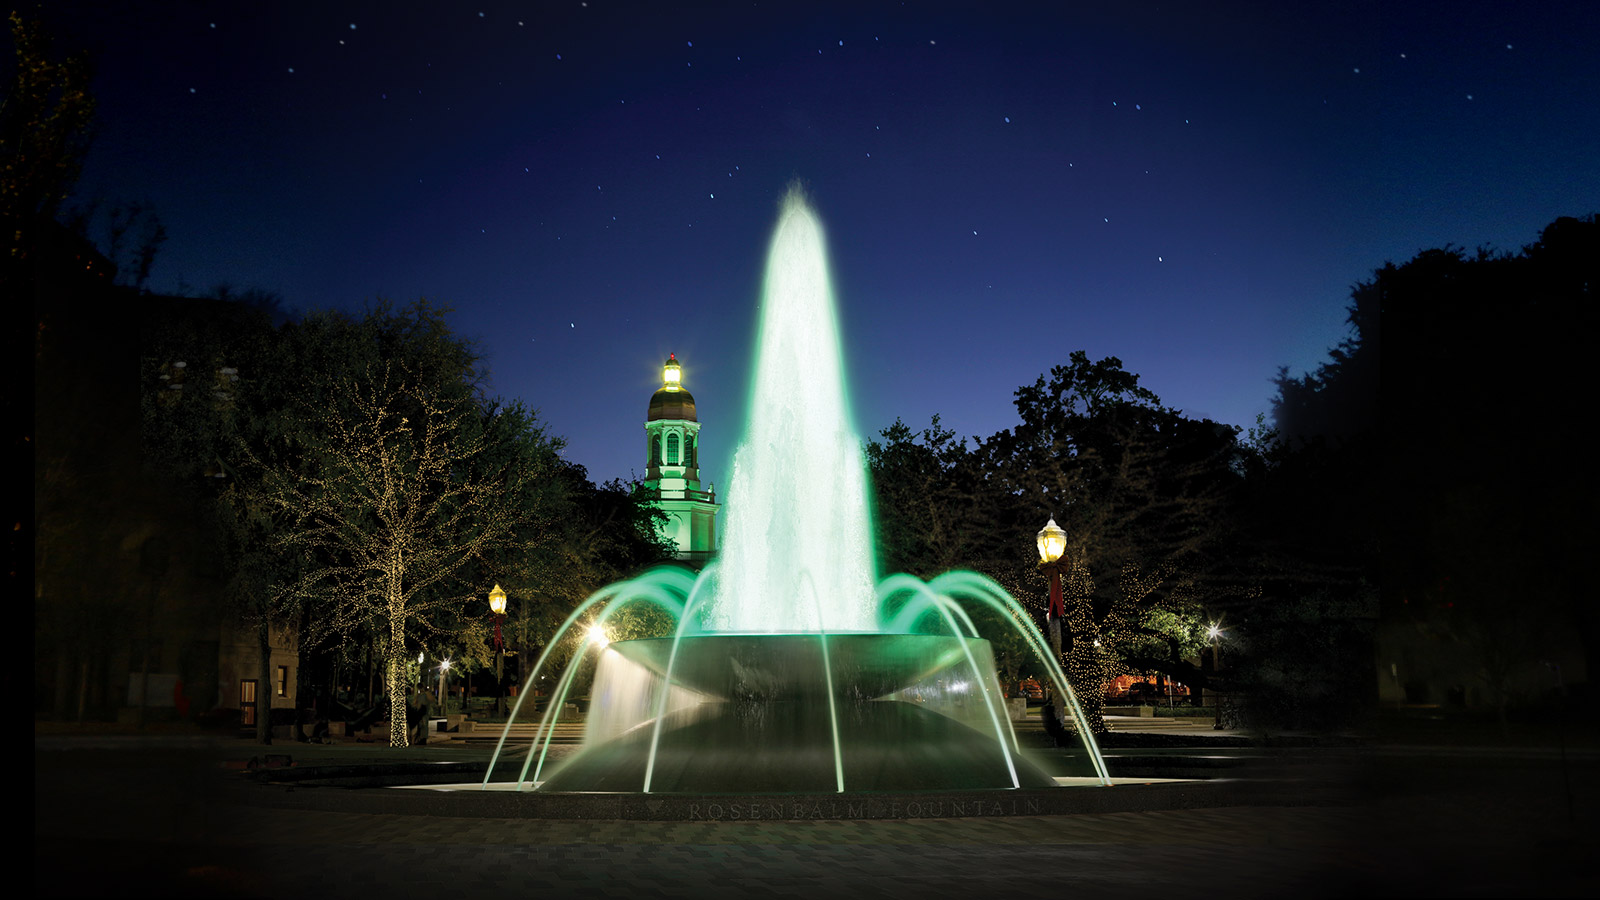 Dedicated in 2015, the Rosenbalm Fountain brings the fountain back to Fountain Mall. The fountain bowl is 4-feet high and 20 feet in diameter and weighs more than 17,000 tons. Water jets and lights create a majestic display to Baylor's already beautiful campus.